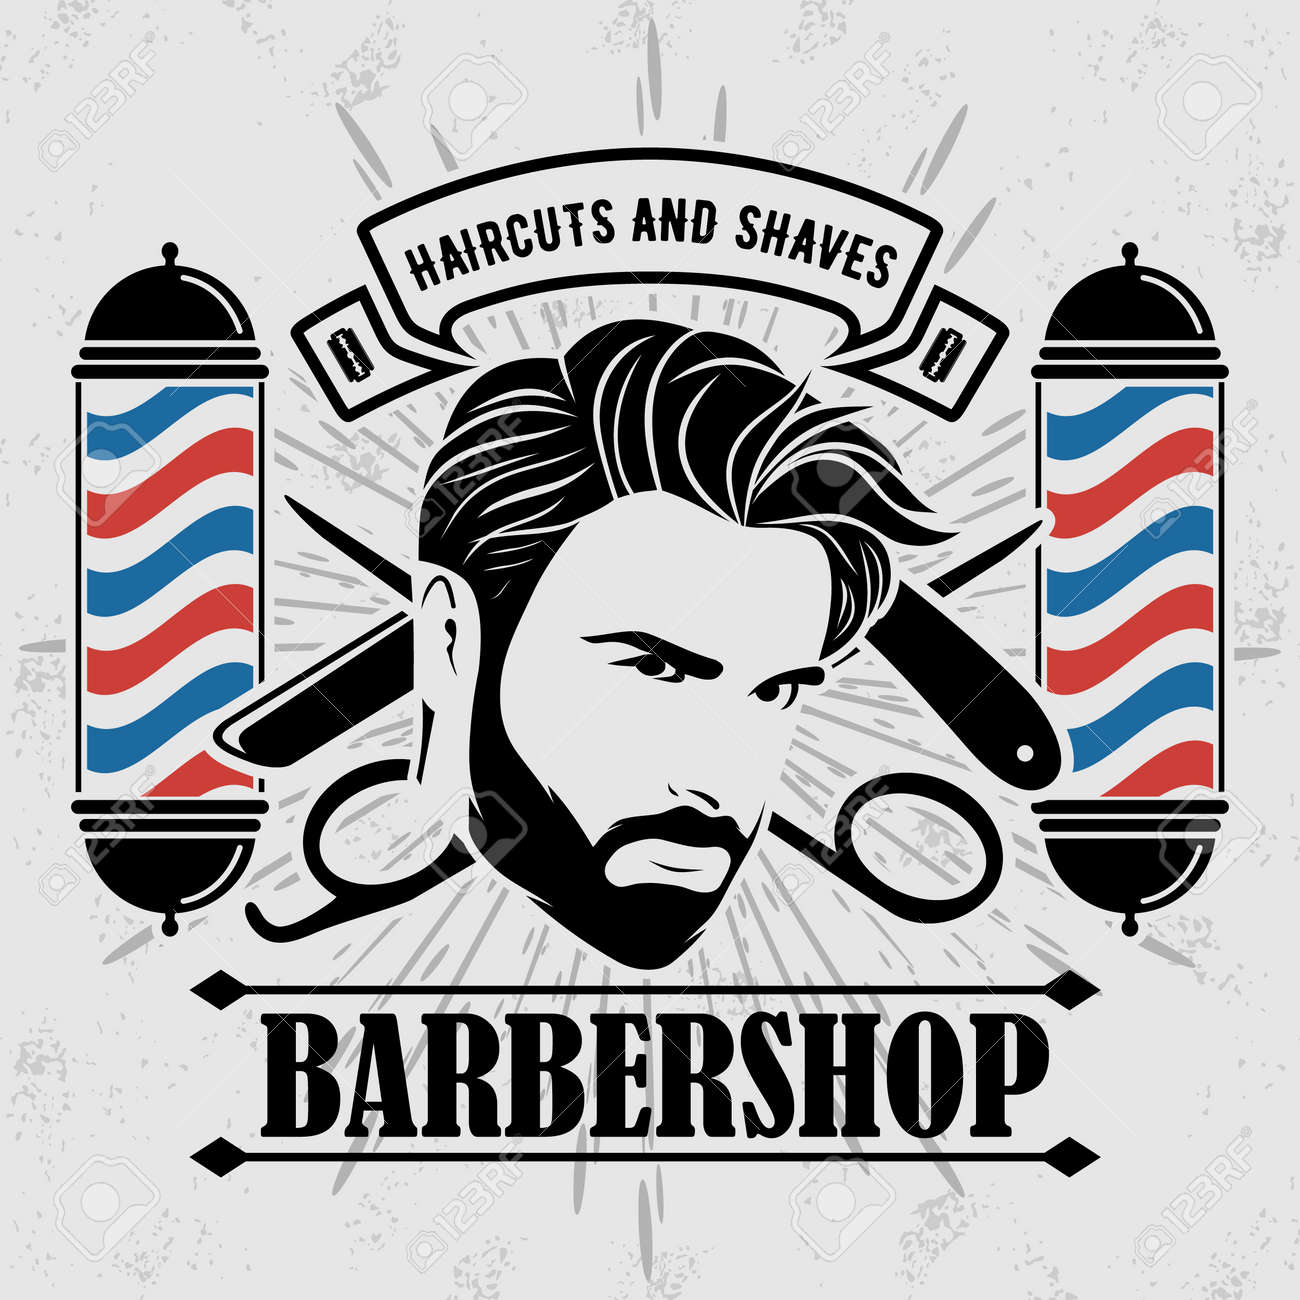 Barber shop poster template with Bearded men - 169447761